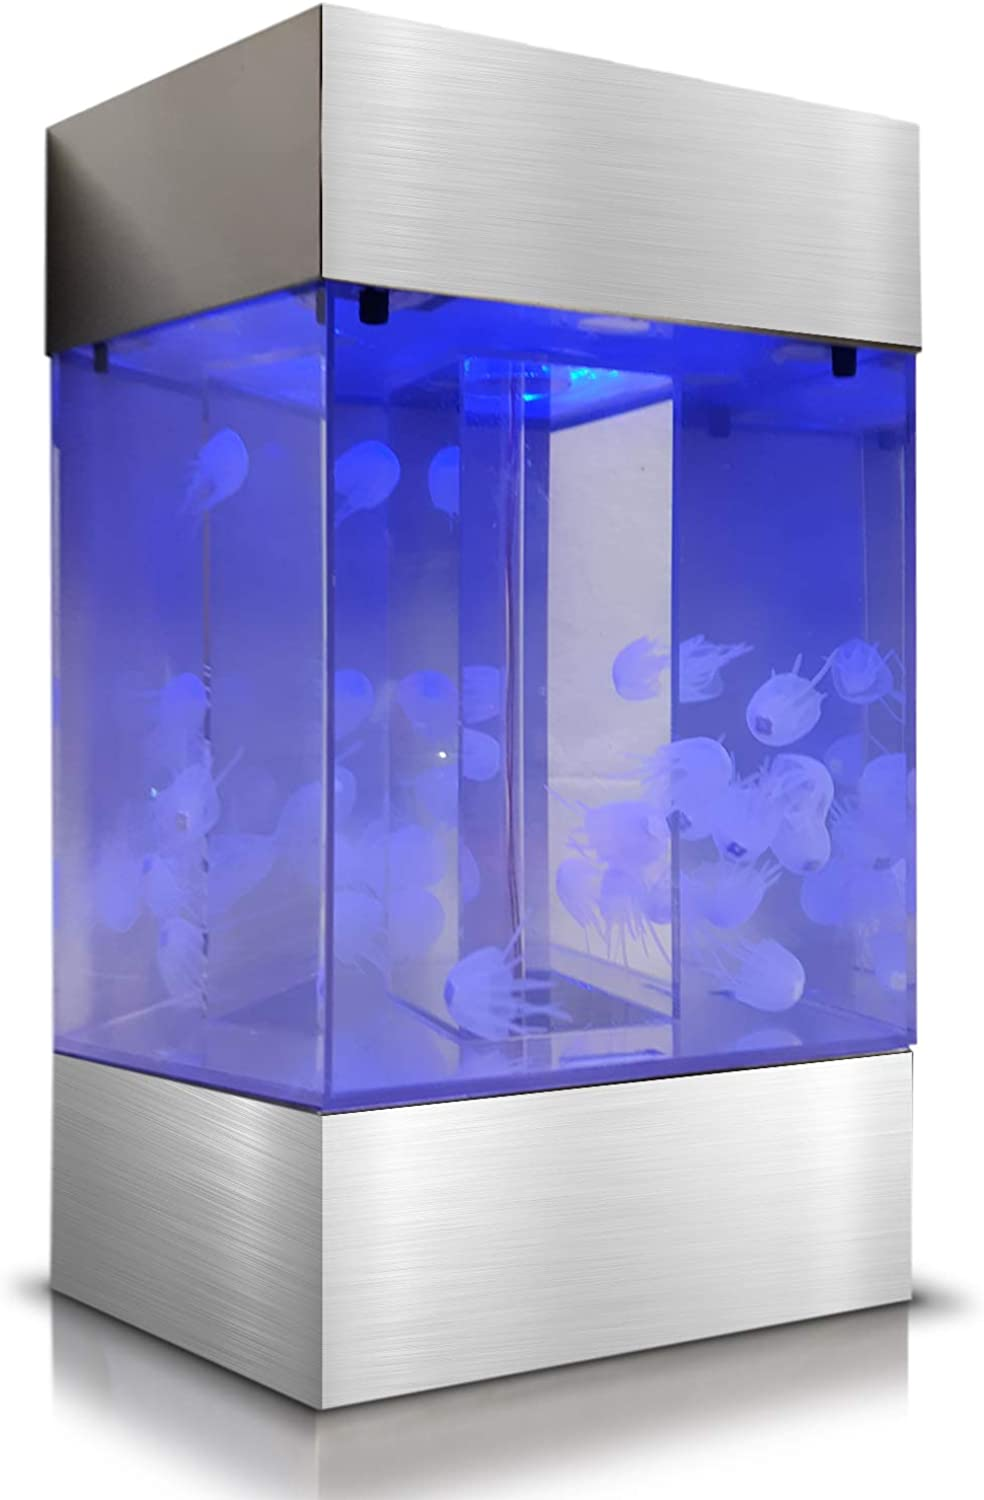 Large Glass Jelly Fish Tank Lamp  Jellyfish Aquarium with Faux Jellyfish That Swim and Look Alive, color Changing Light Show and Remote Control